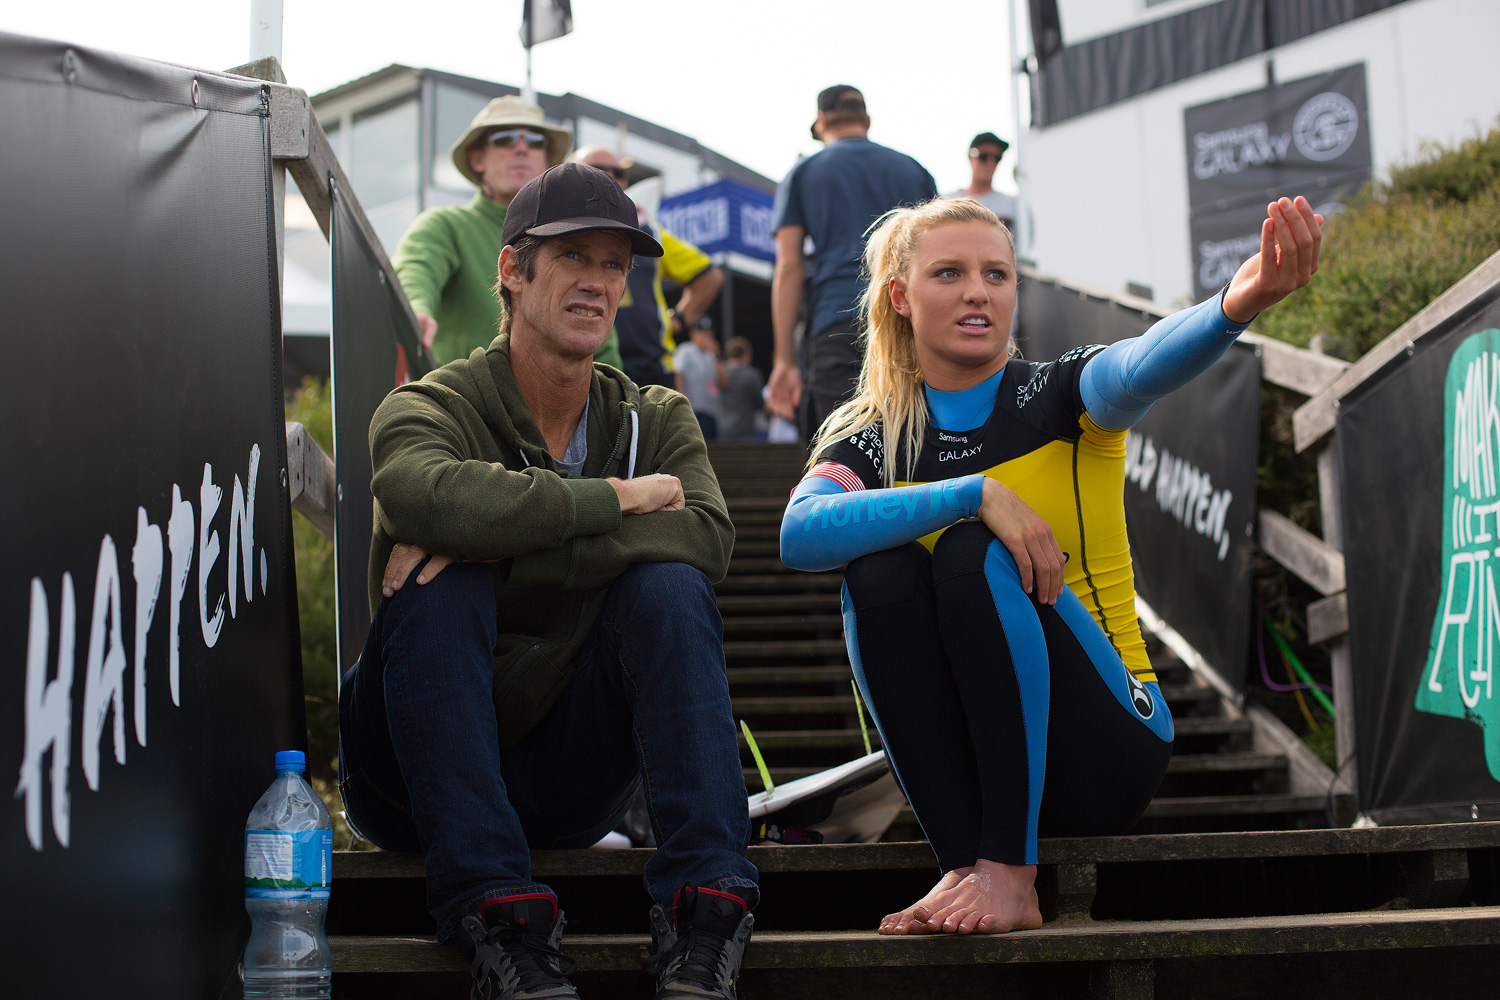 Lakey Peterson talks with her coach Mike Parsons at the Rip Curl Pro Bells Beach.